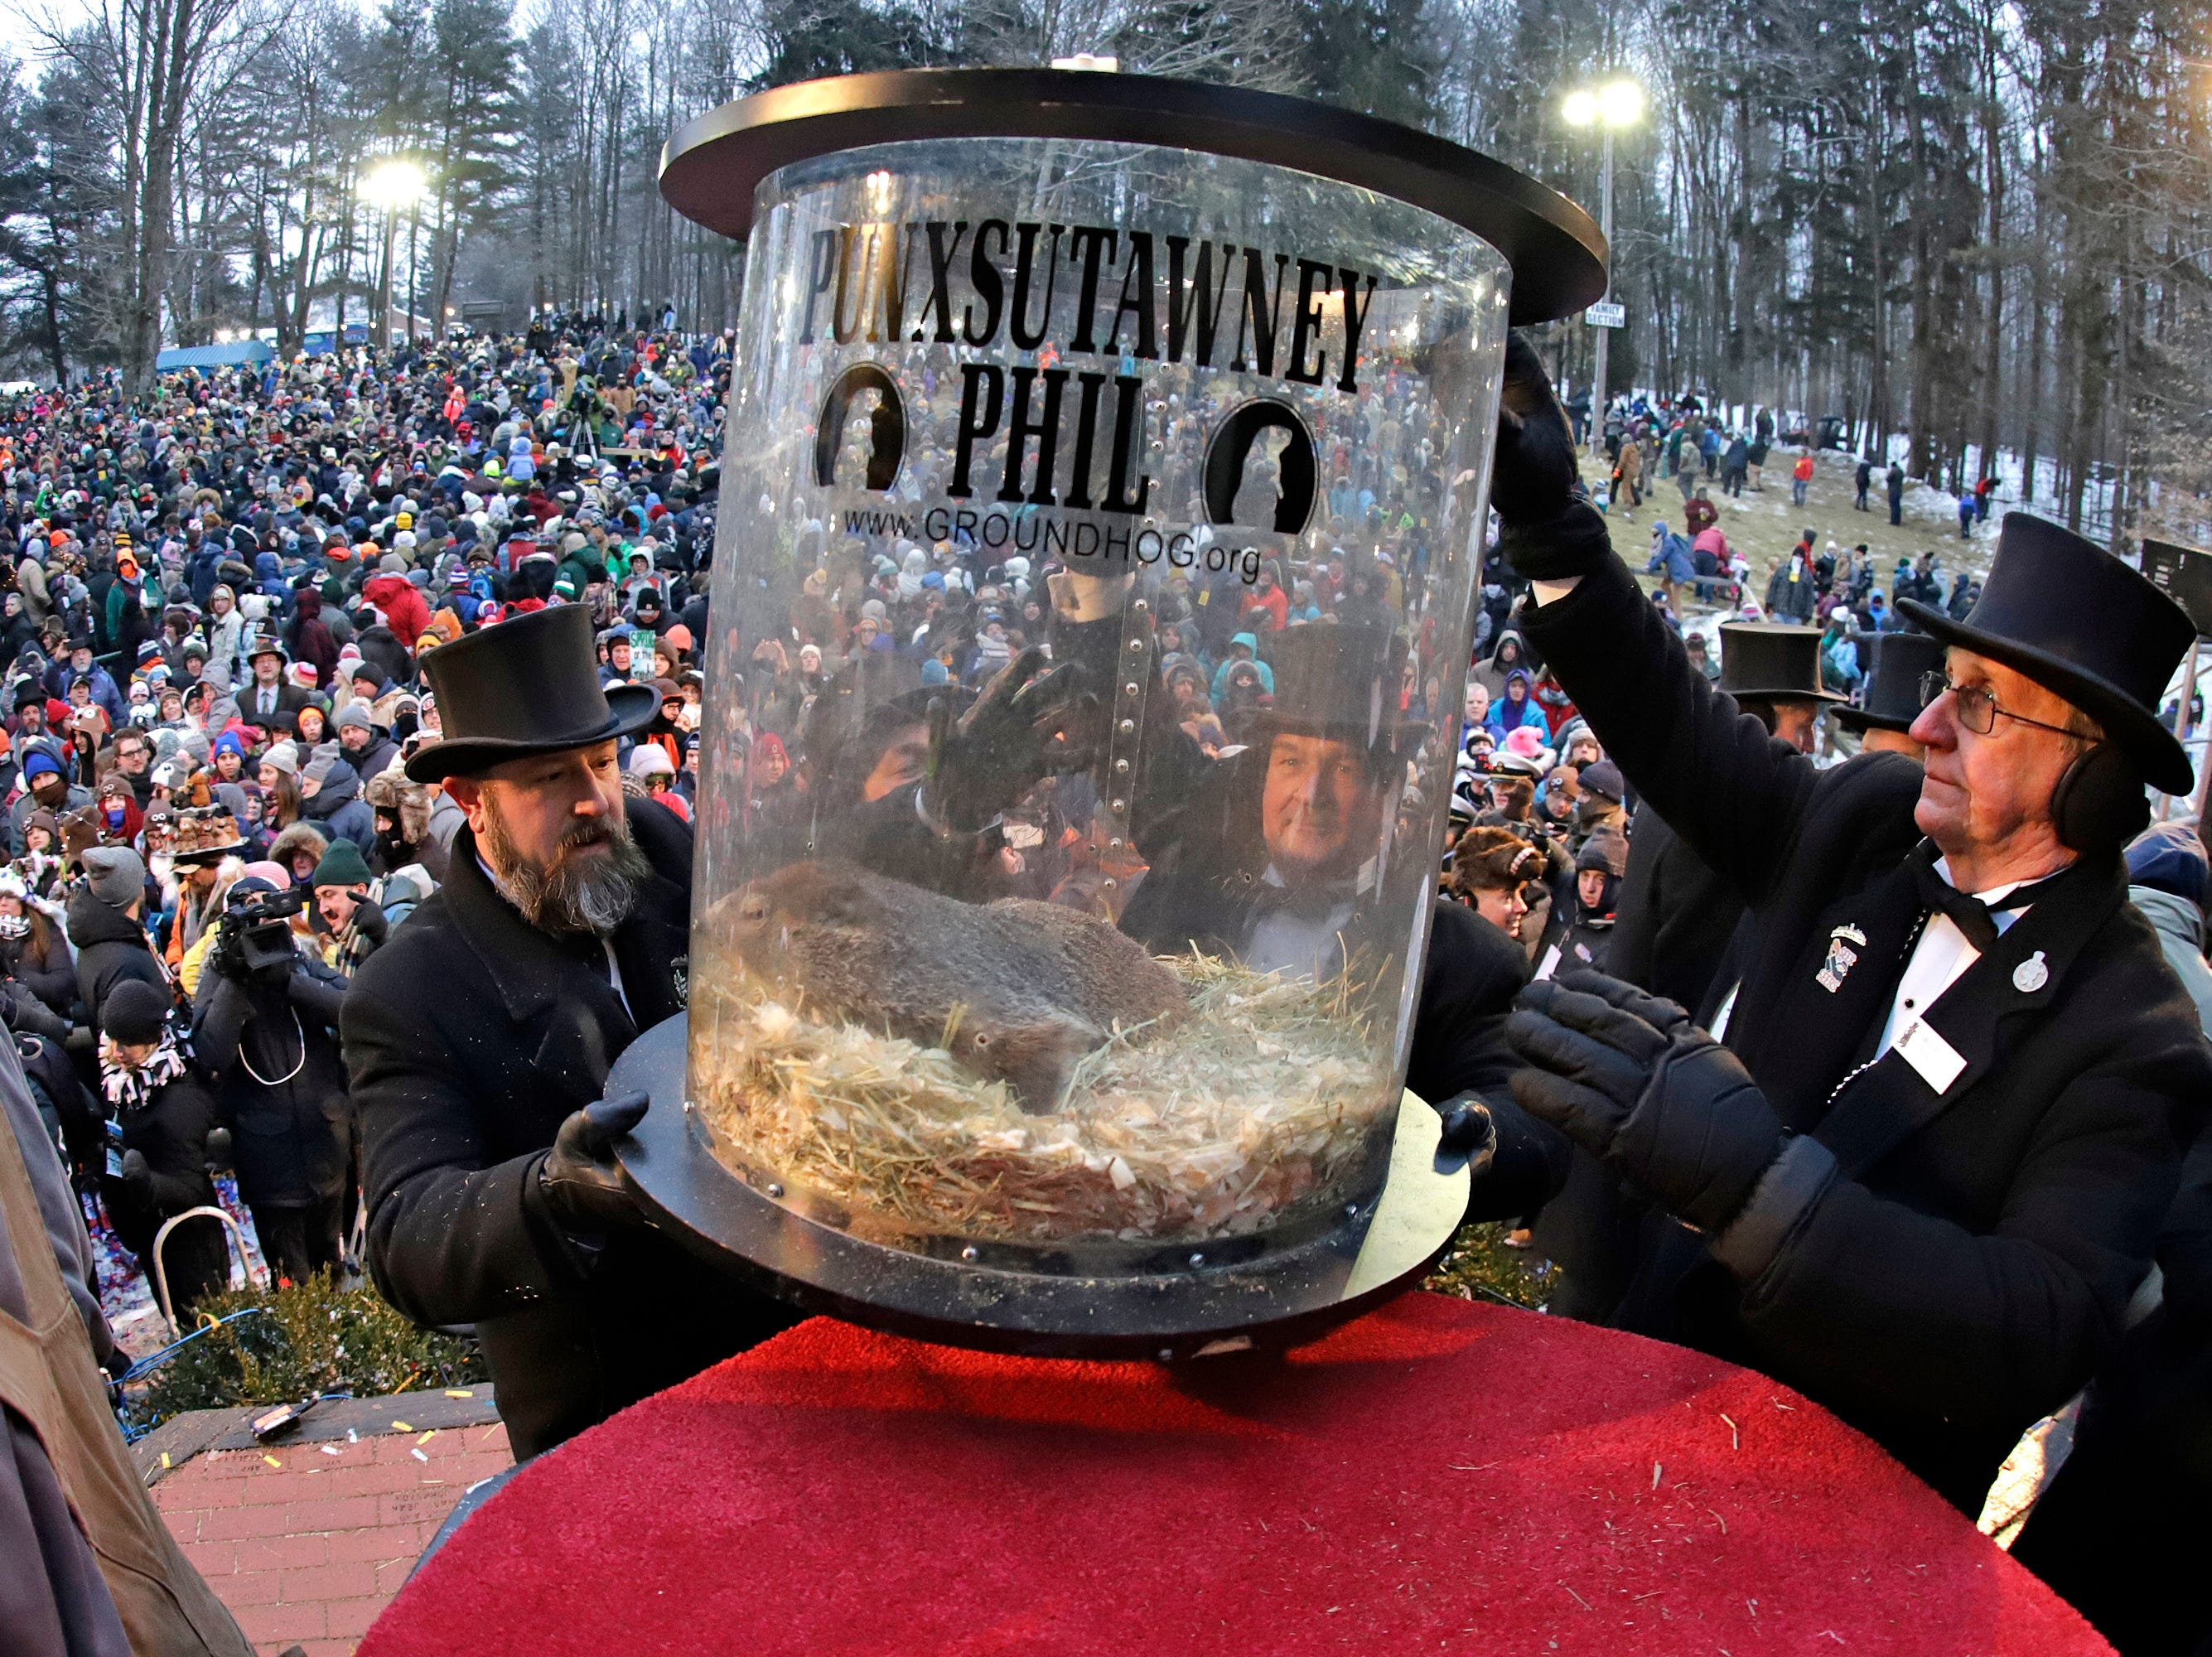 Groundhog Club co-handler Al Dereume, left, is help by Ron Ploucha, right, as they lift Punxsutawney Phil, the weather prognosticating groundhog, in his carrying capsule, during the 133rd celebration of Groundhog Day on Gobbler's Knob in Punxsutawney, Pa. Saturday, Feb. 2, 2019. Phil's handlers said that the groundhog has forecast an early spring.